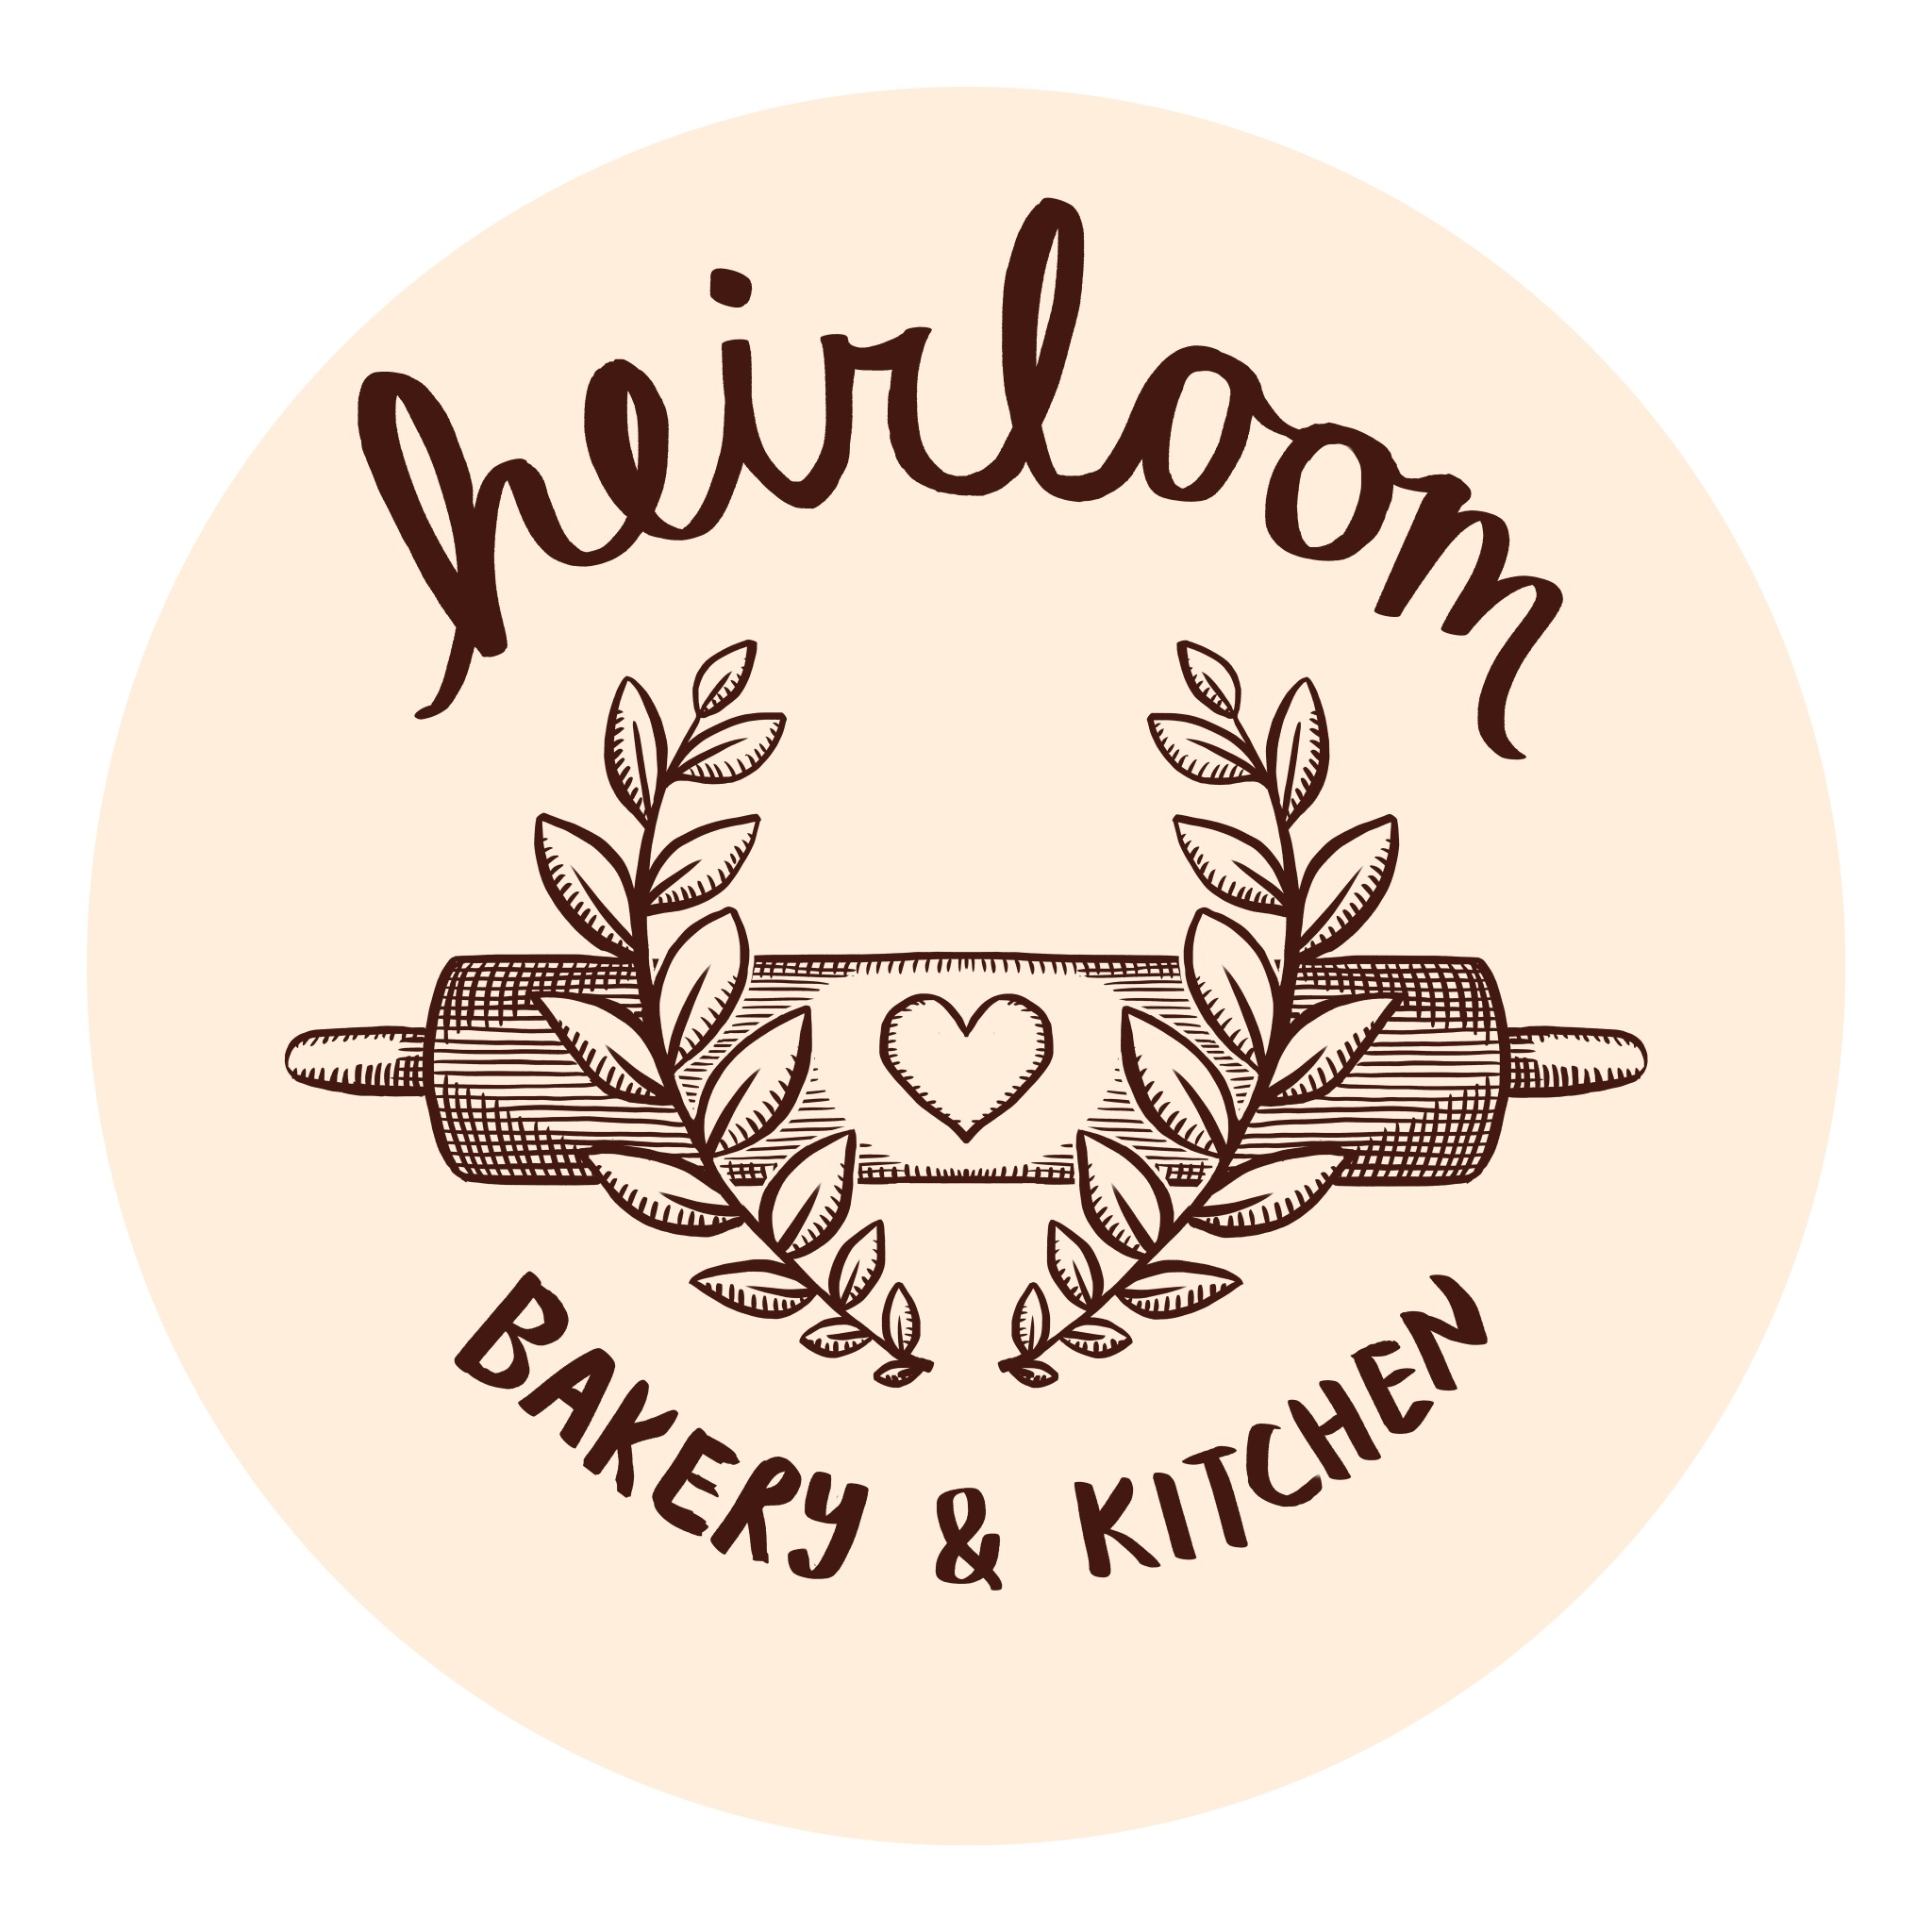 Heirloom Bakery Logo.jpeg